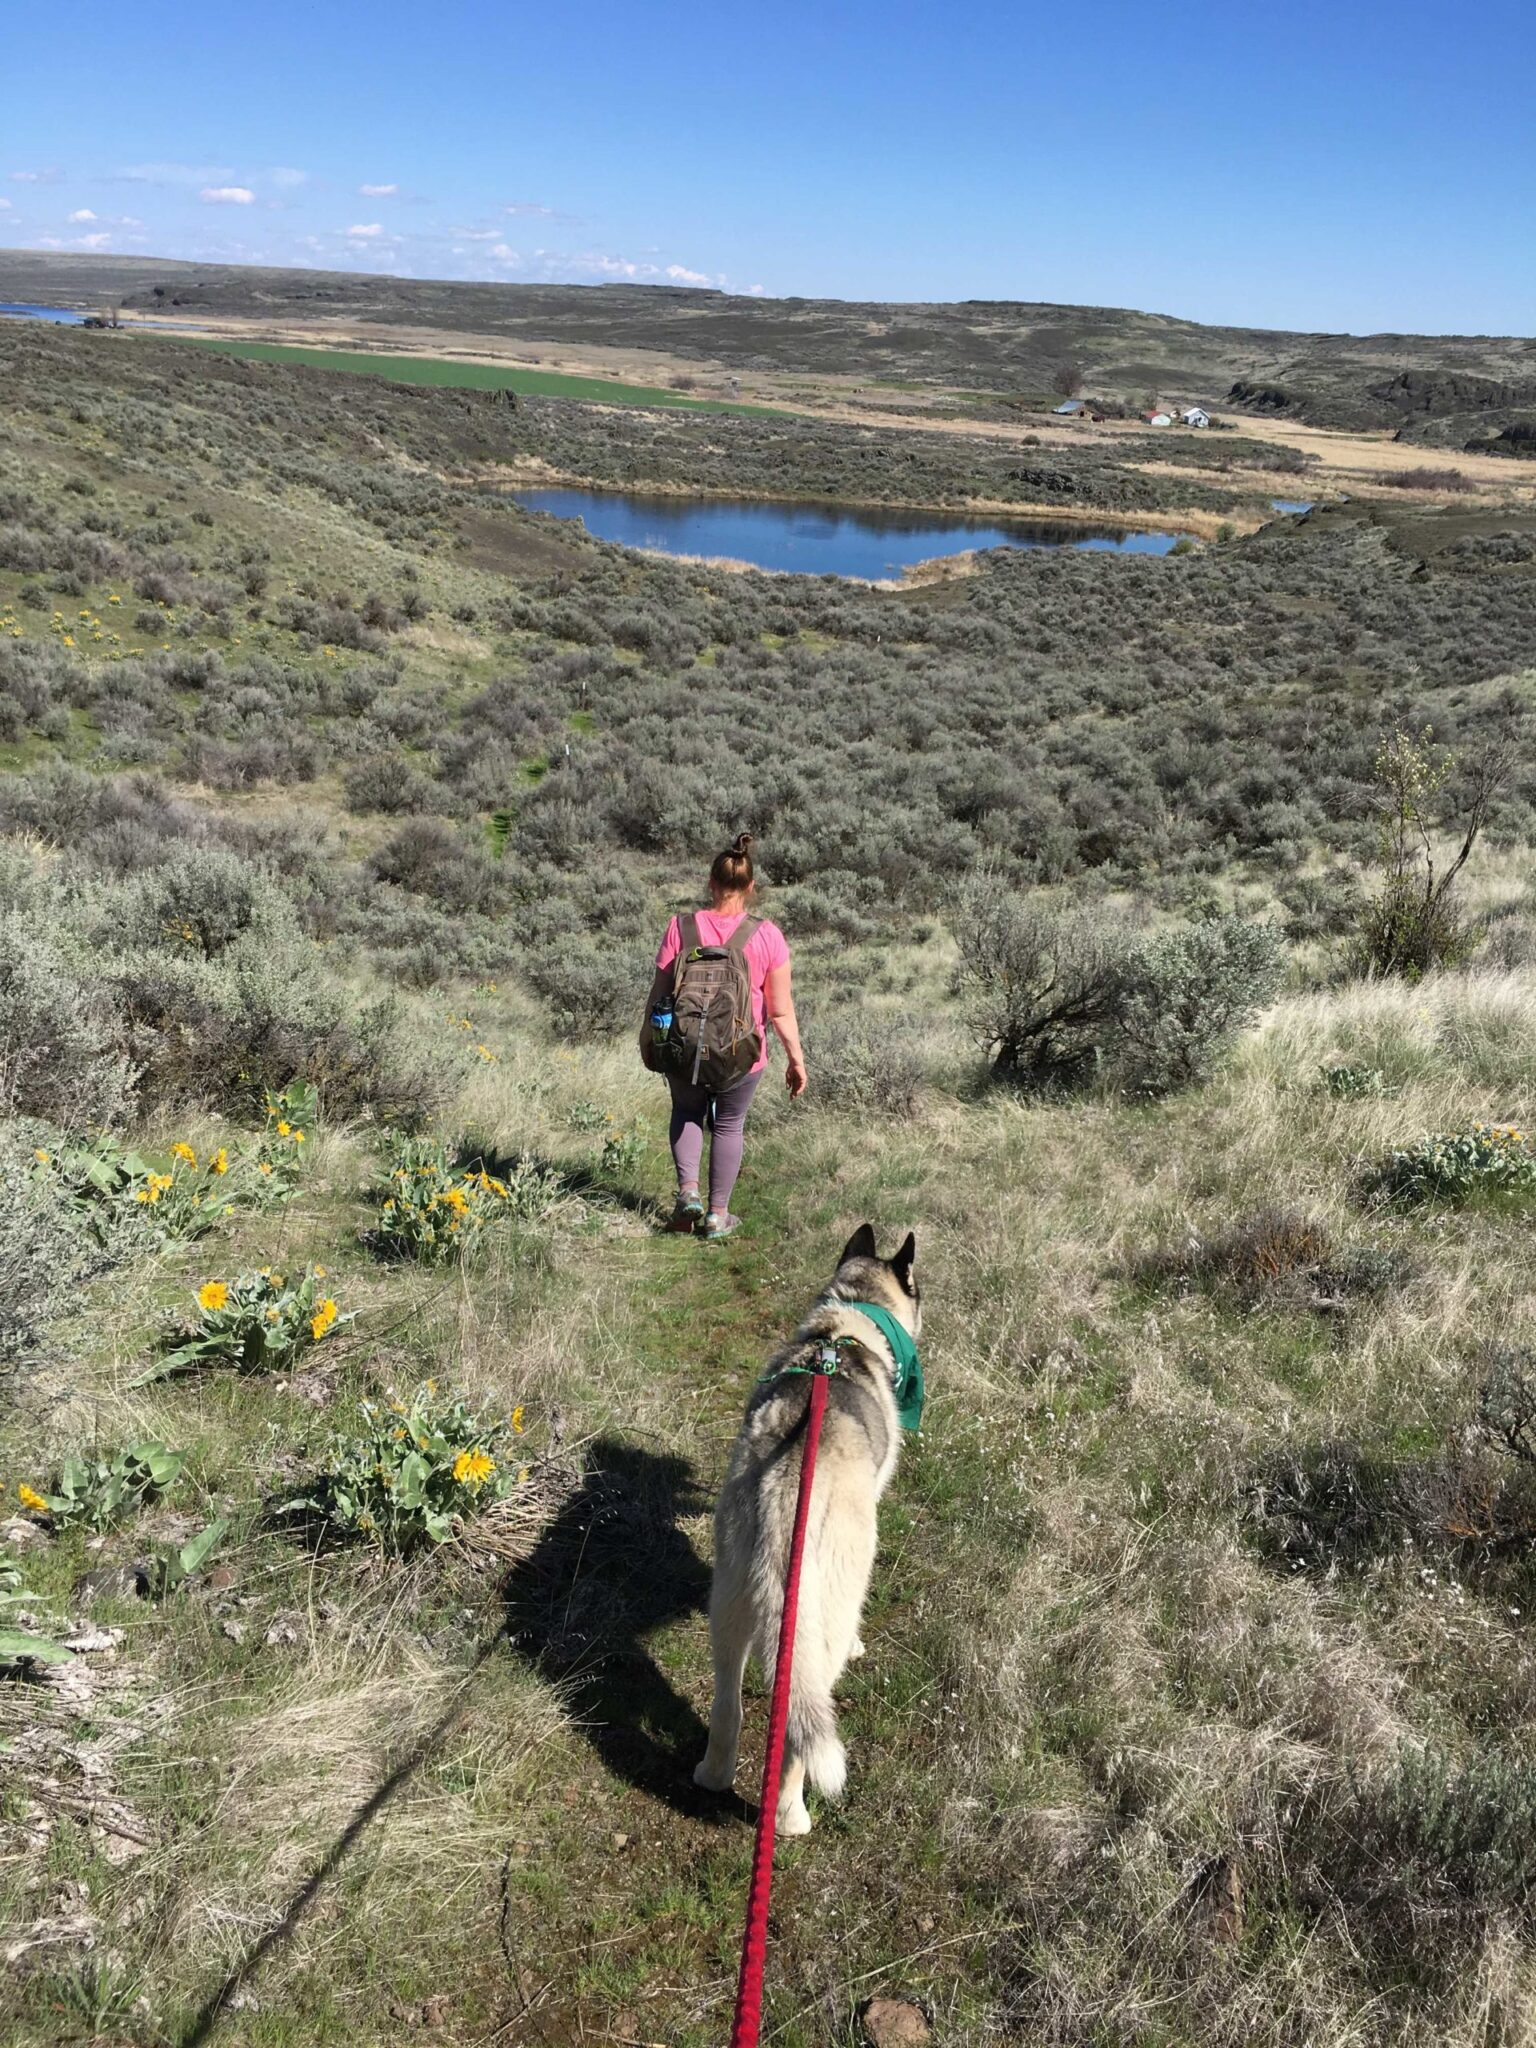 A woman and her dog walking on a trail towards a lake.